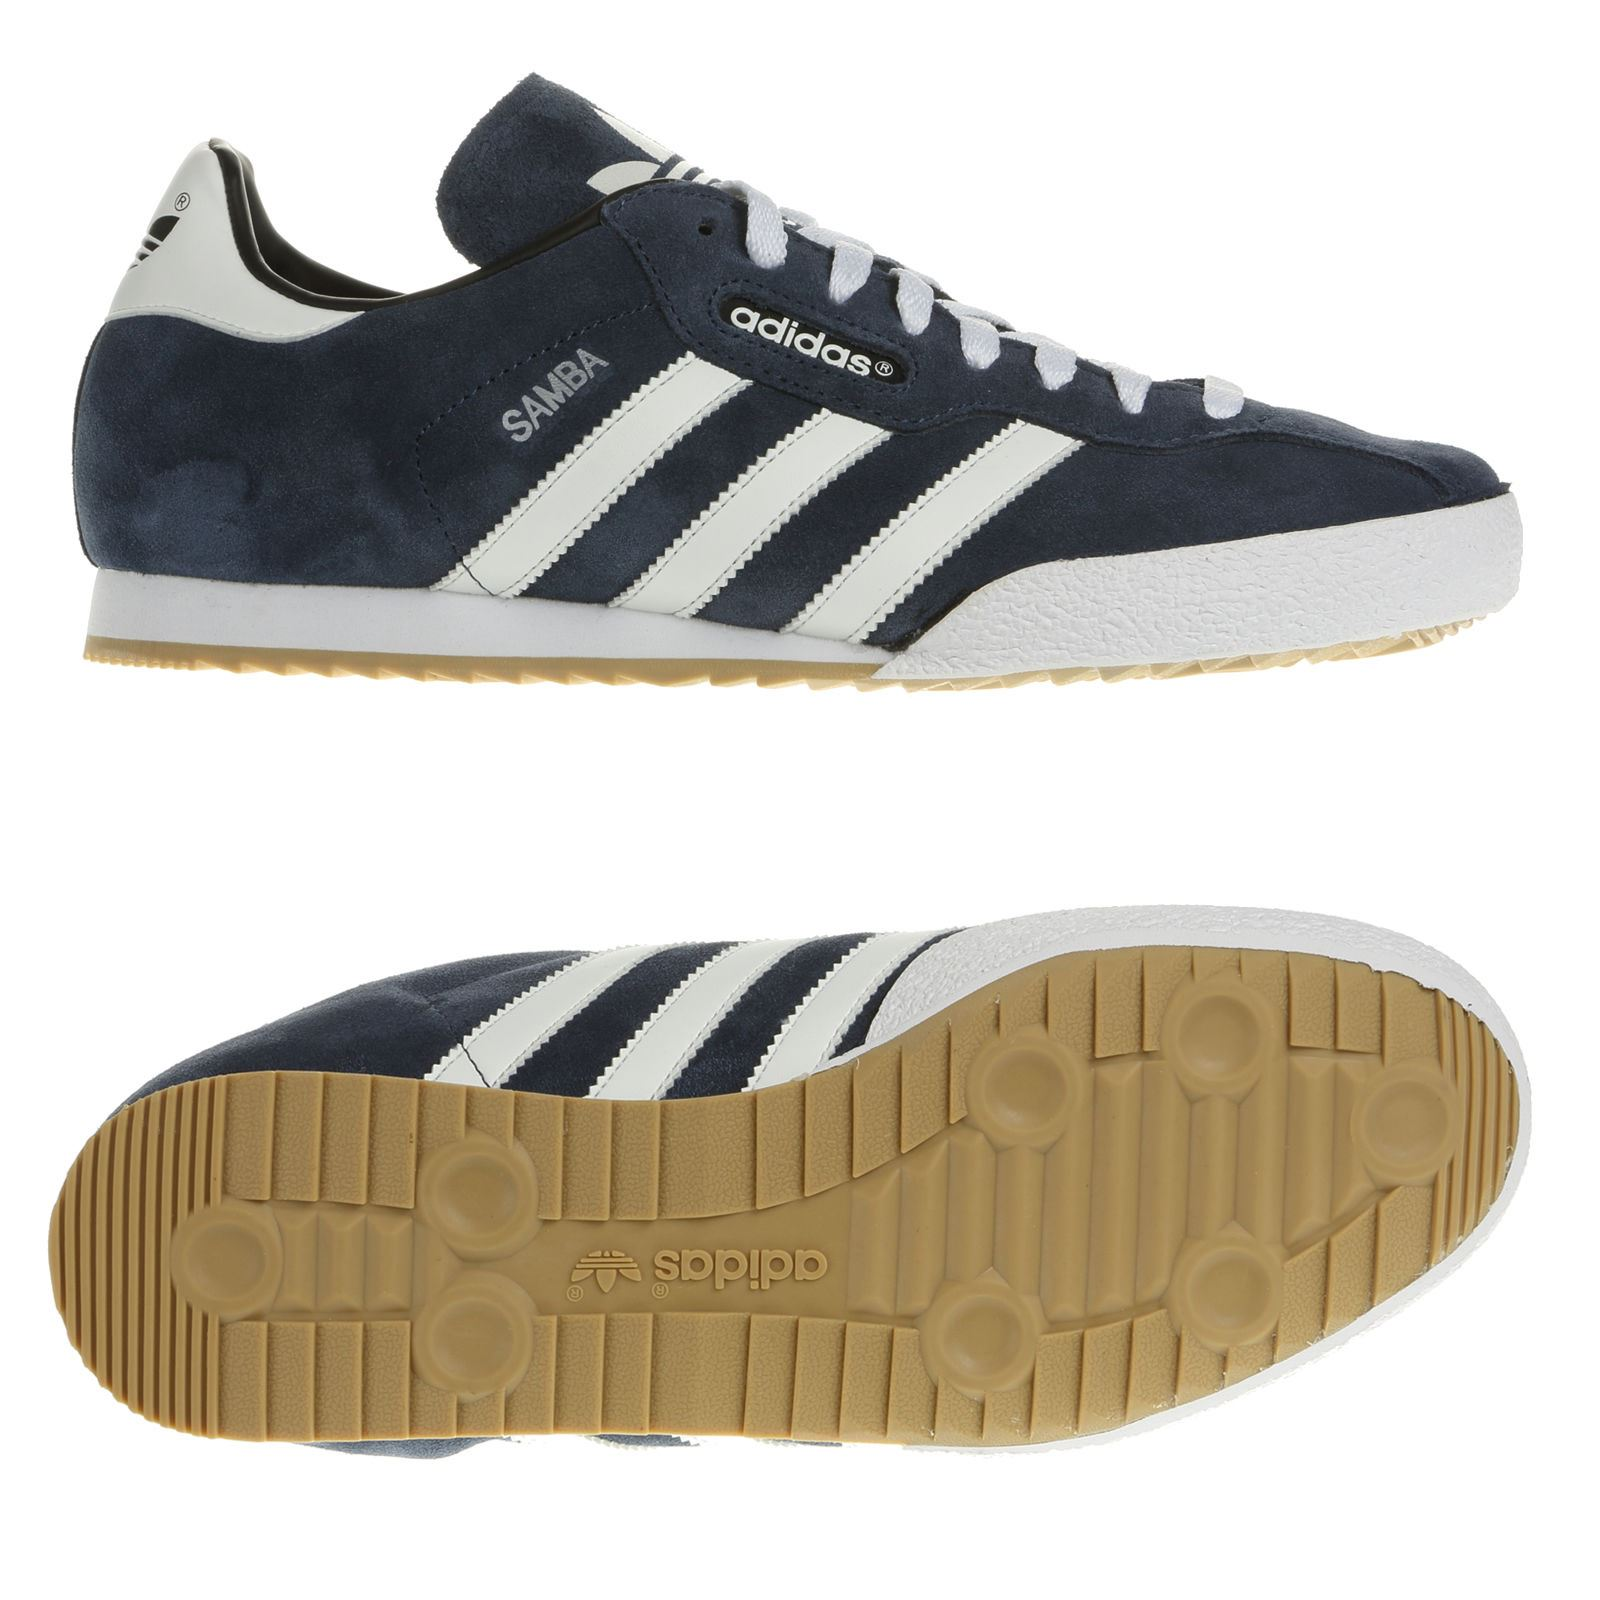 new arrivals 2cbdc c6d51 adidas Originals TRAINERS MULTI LISTINGS SHOES BECKENBAUER STAN SMITH ZX  GAZELLE   eBay